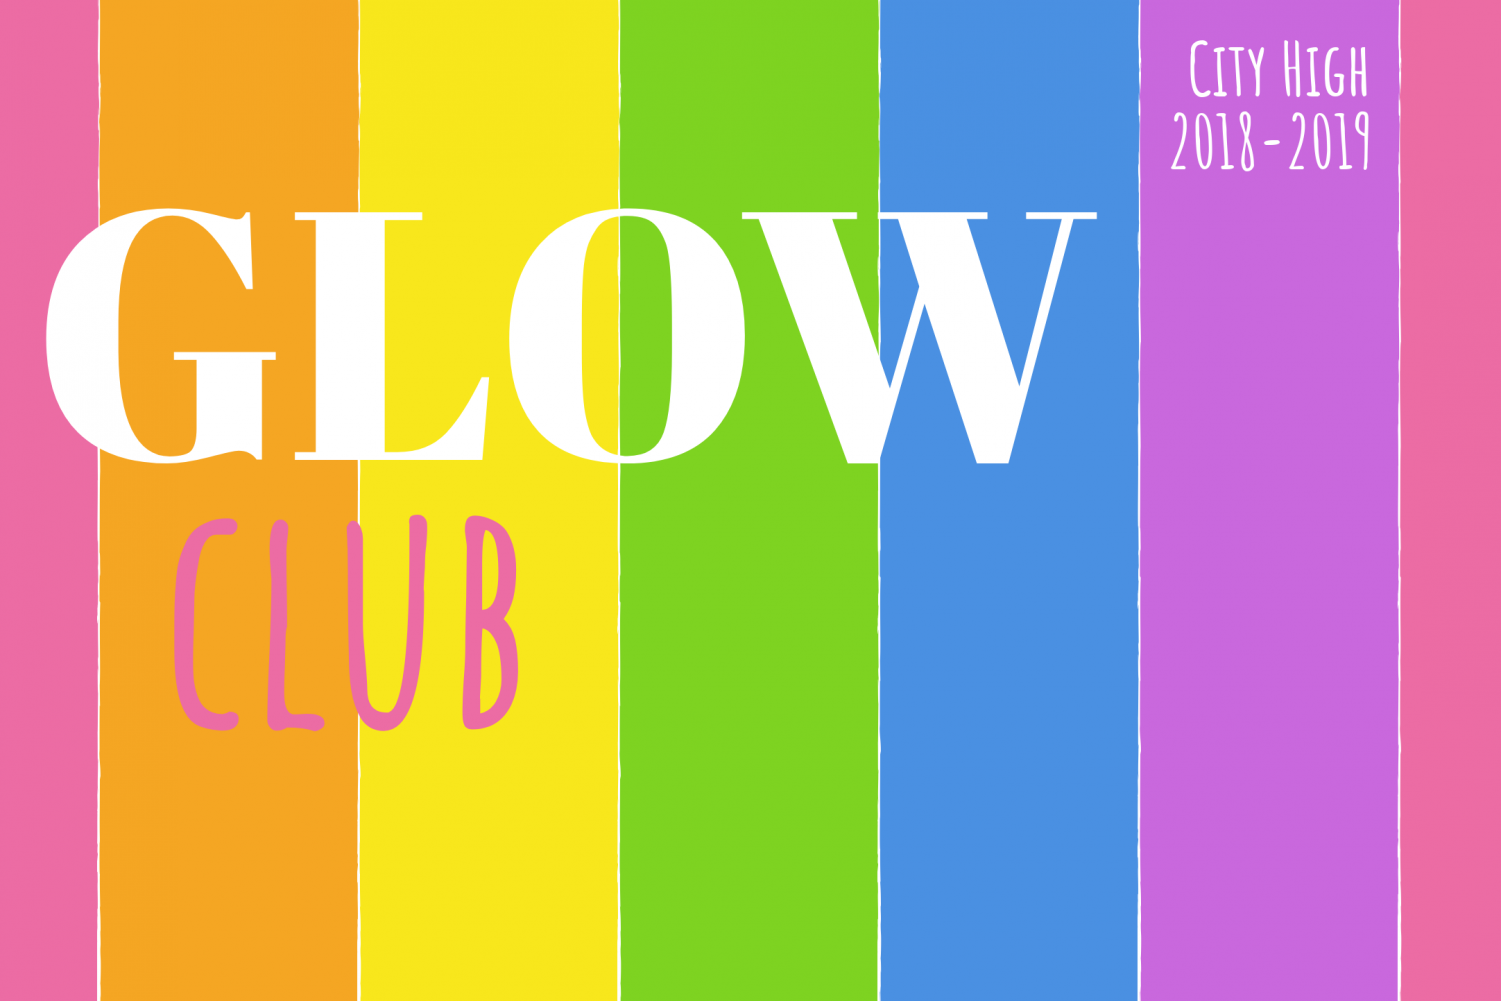 Glow club hostss dances and club meetings for LGBTQ students and anyone supporting LGBTQ issues.